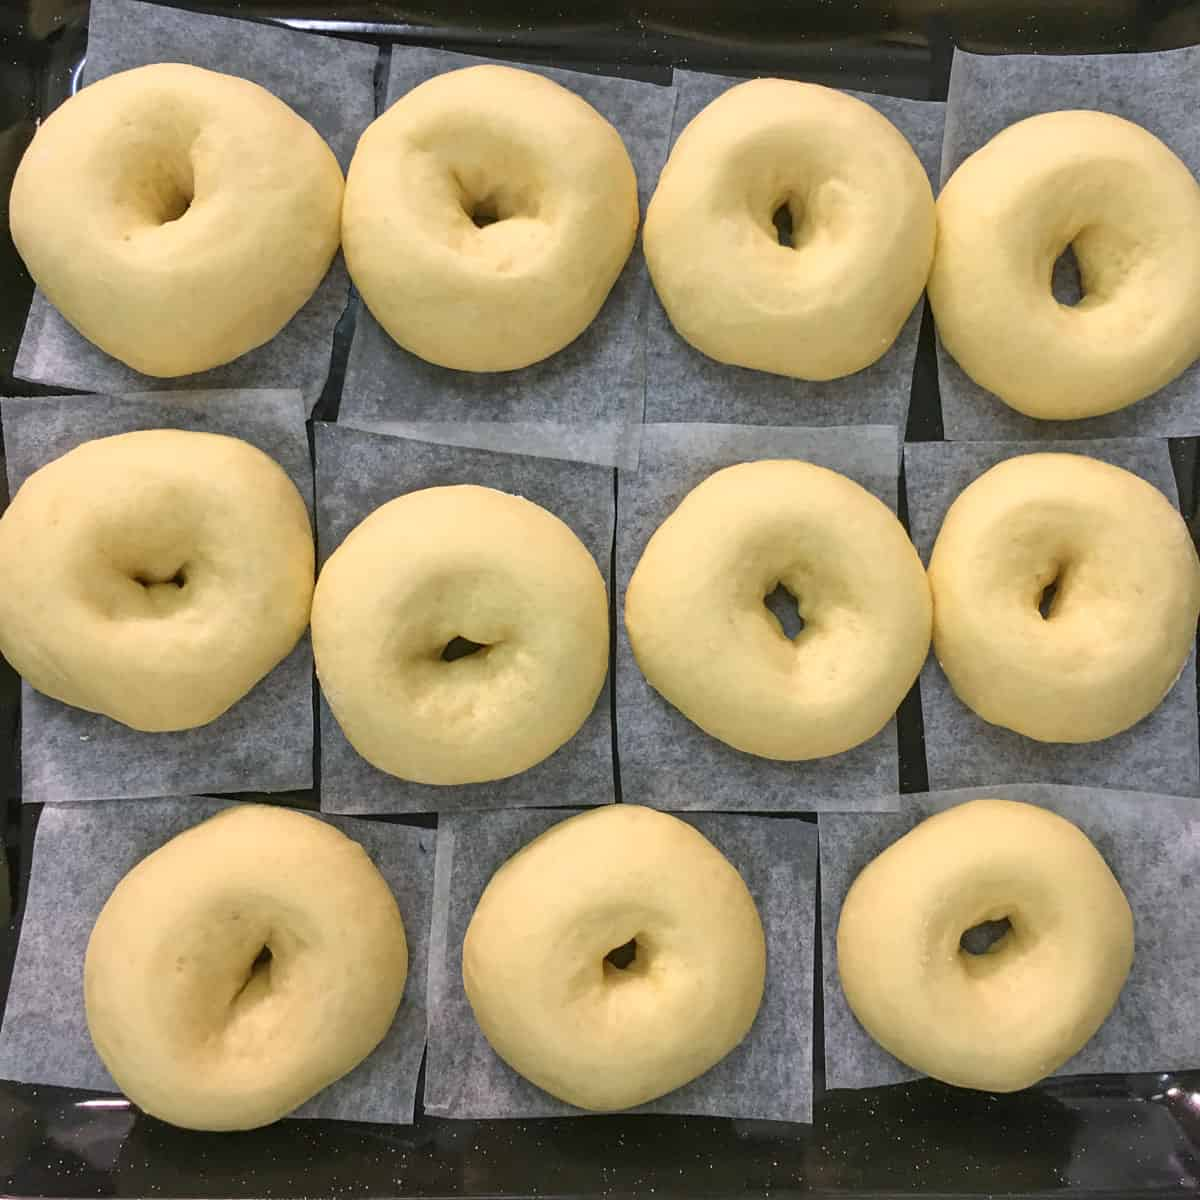 Proofed donuts on a black tray